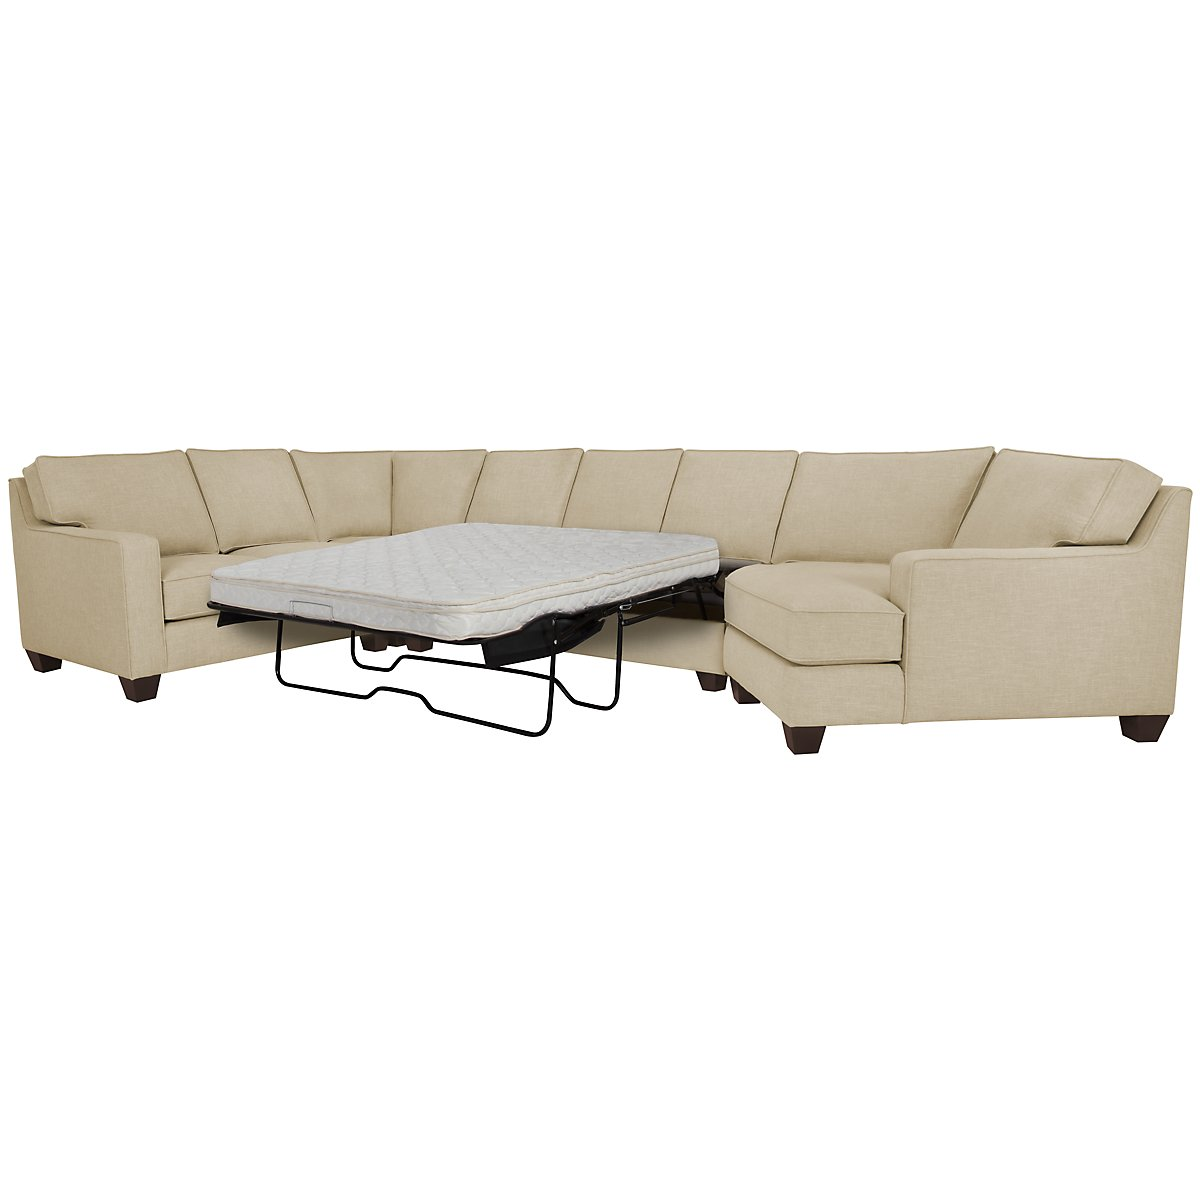 York Beige Fabric Small Right Cuddler Innerspring Sleeper Sectional